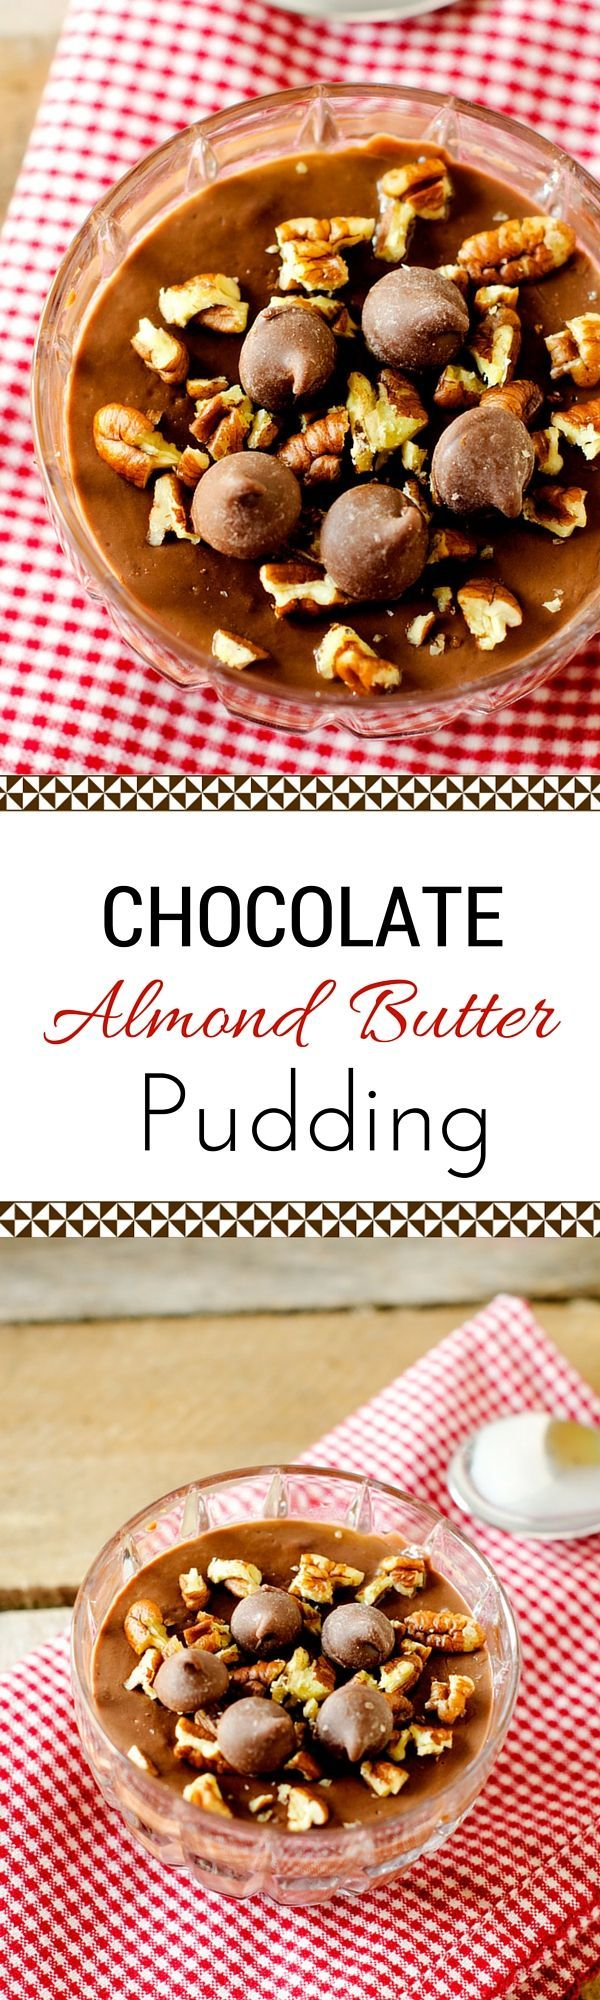 Chocolate Almond Butter Pudding - This rich and delicious healthy dessert recipe is one you will feel good about giving your family. @divinechocolate #sponsored